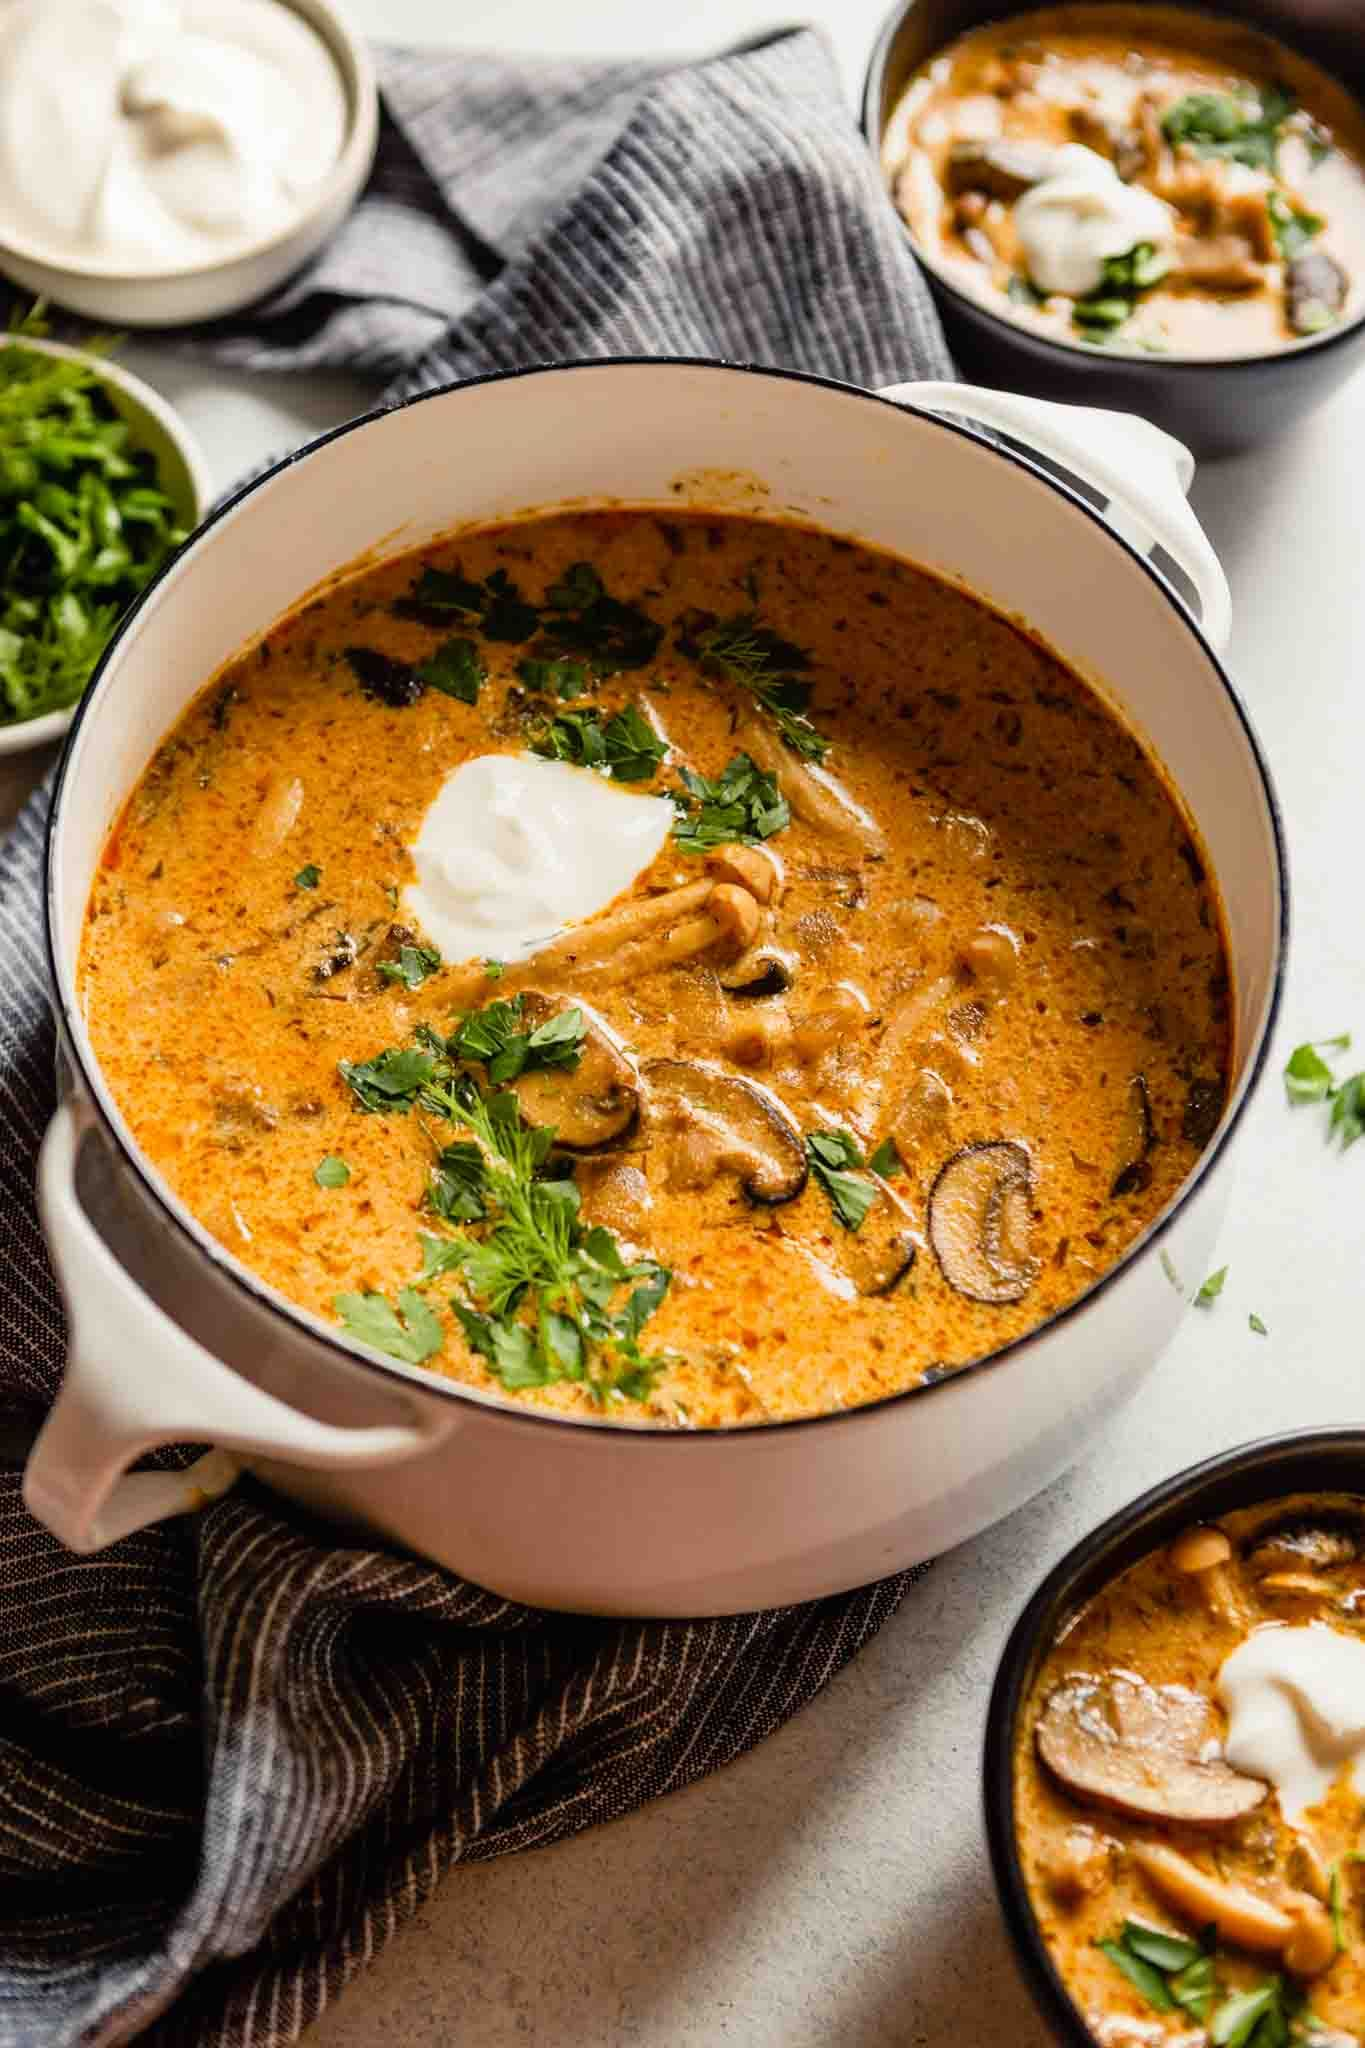 This Hungarian Mushroom Soup is full of flavor, creamy and so cozy. Among the mushrooms and dash of soy sauce—which add TONS of umami flavor—this soup is flavored with paprika, dill and sour cream. Serve with crusty bread for a soul-warming supper. | Zestful Kitchen #hungarianmushroomsoup #creamysoup #mushroomsoup #vegetariansoup #vegetarianmushroomsoup